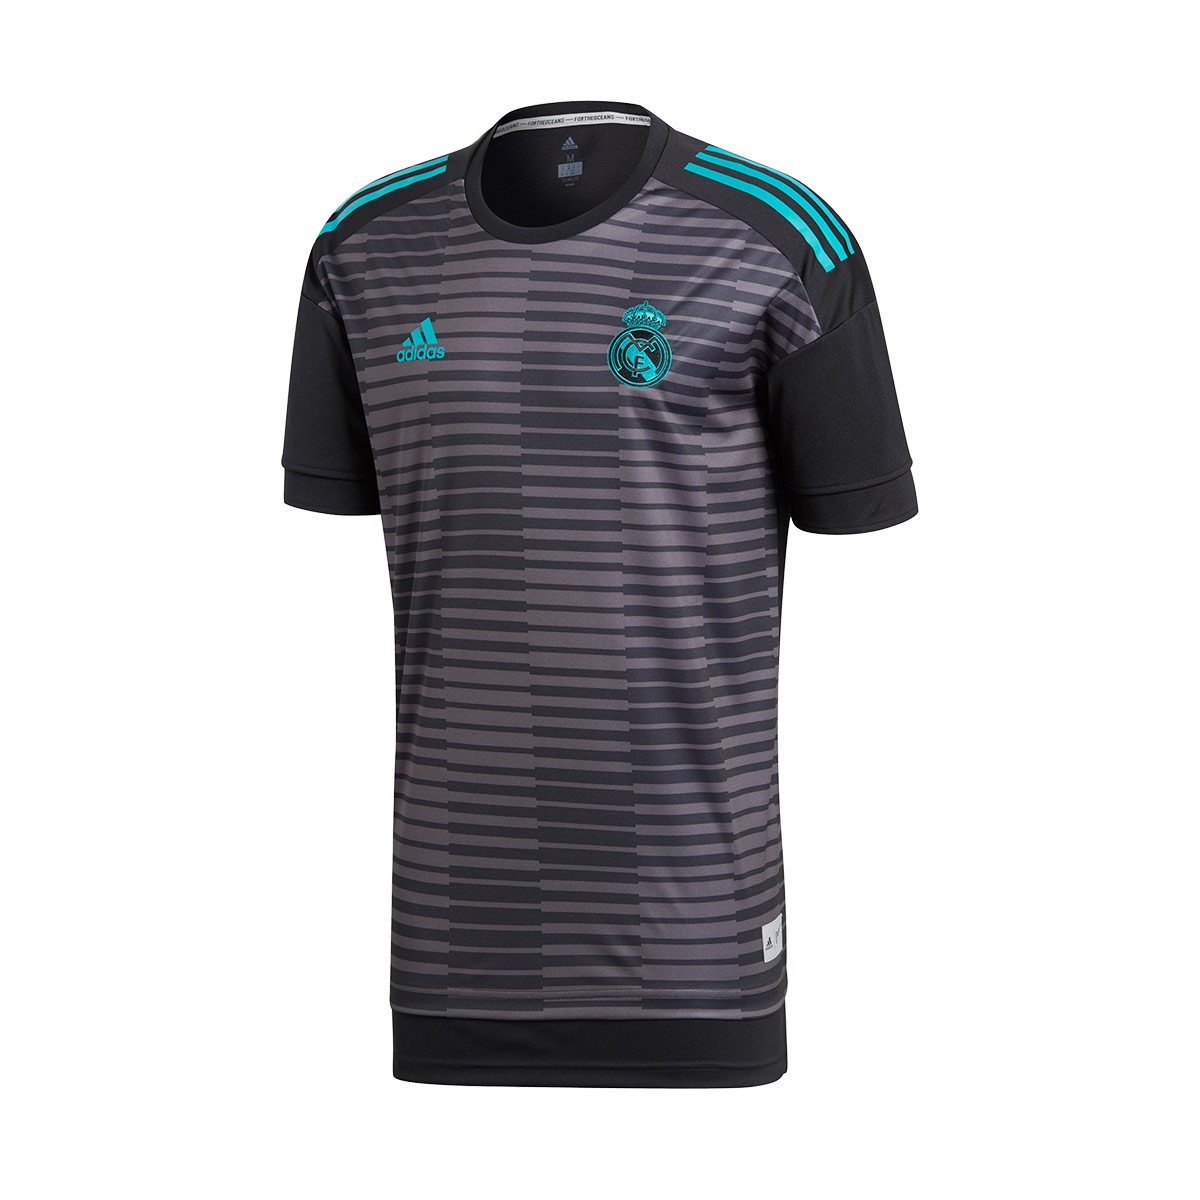 497ec5747db2b Camiseta adidas Real Madrid Training 2017-2018 Black-Granite - Tienda de  fútbol Fútbol Emotion